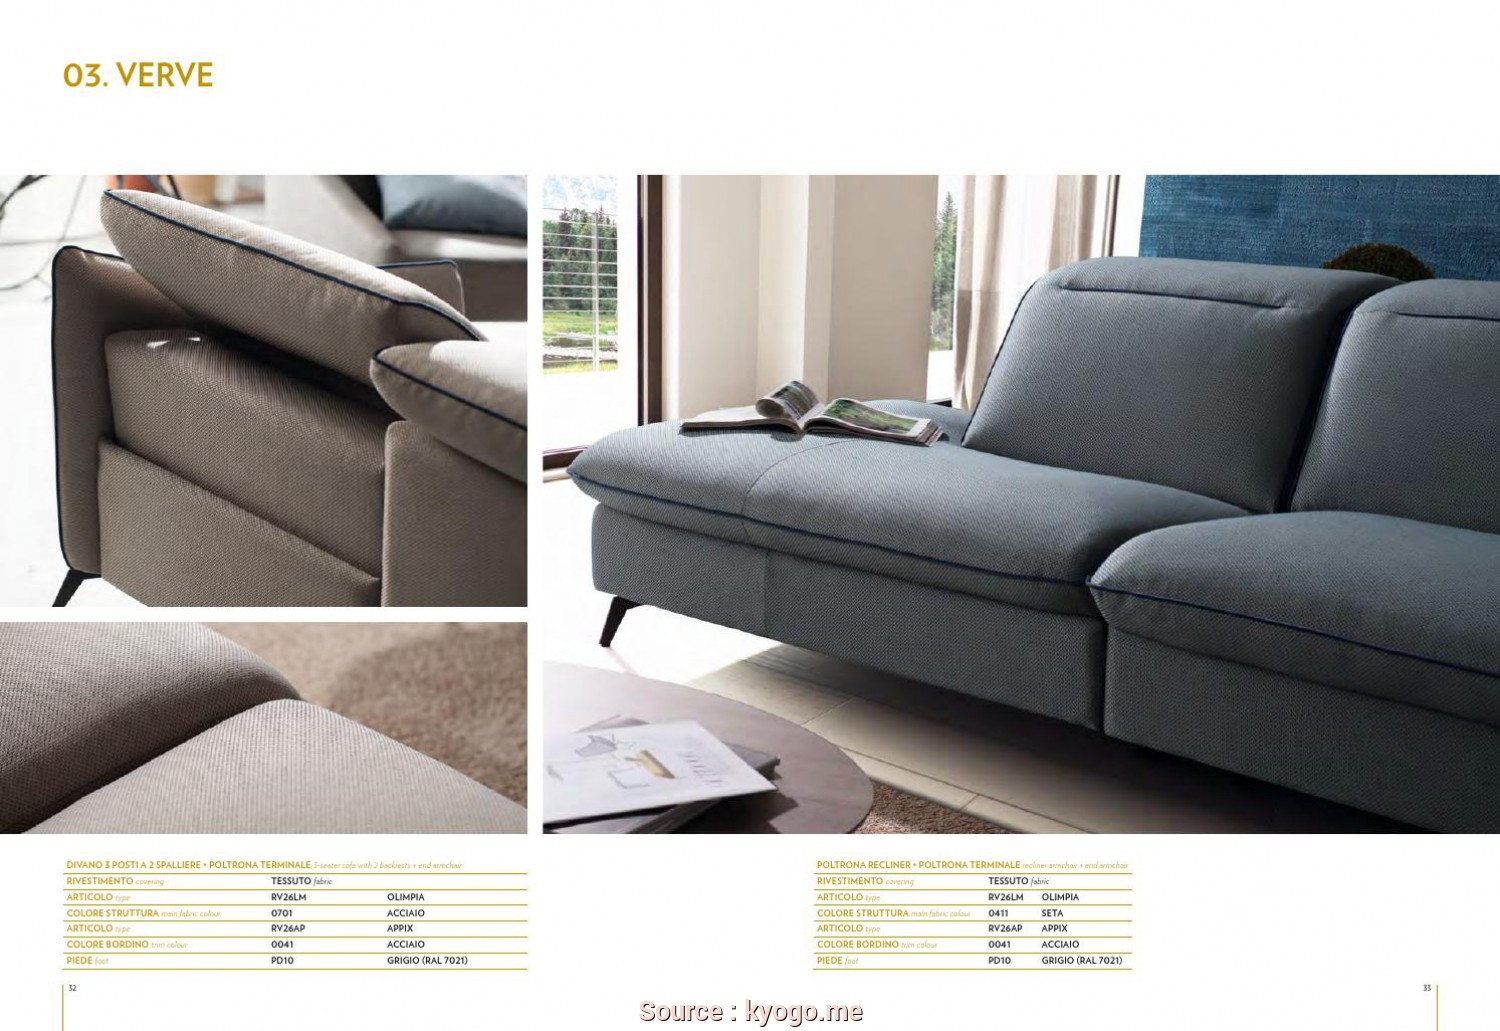 Divani Poltrone Sofa Grigio, Bella Full Size Of Rivestimento Divano Poltrone Sofa Colombini 2016 Sofup Selection By Beppe Calderoni Consuilting Issuu